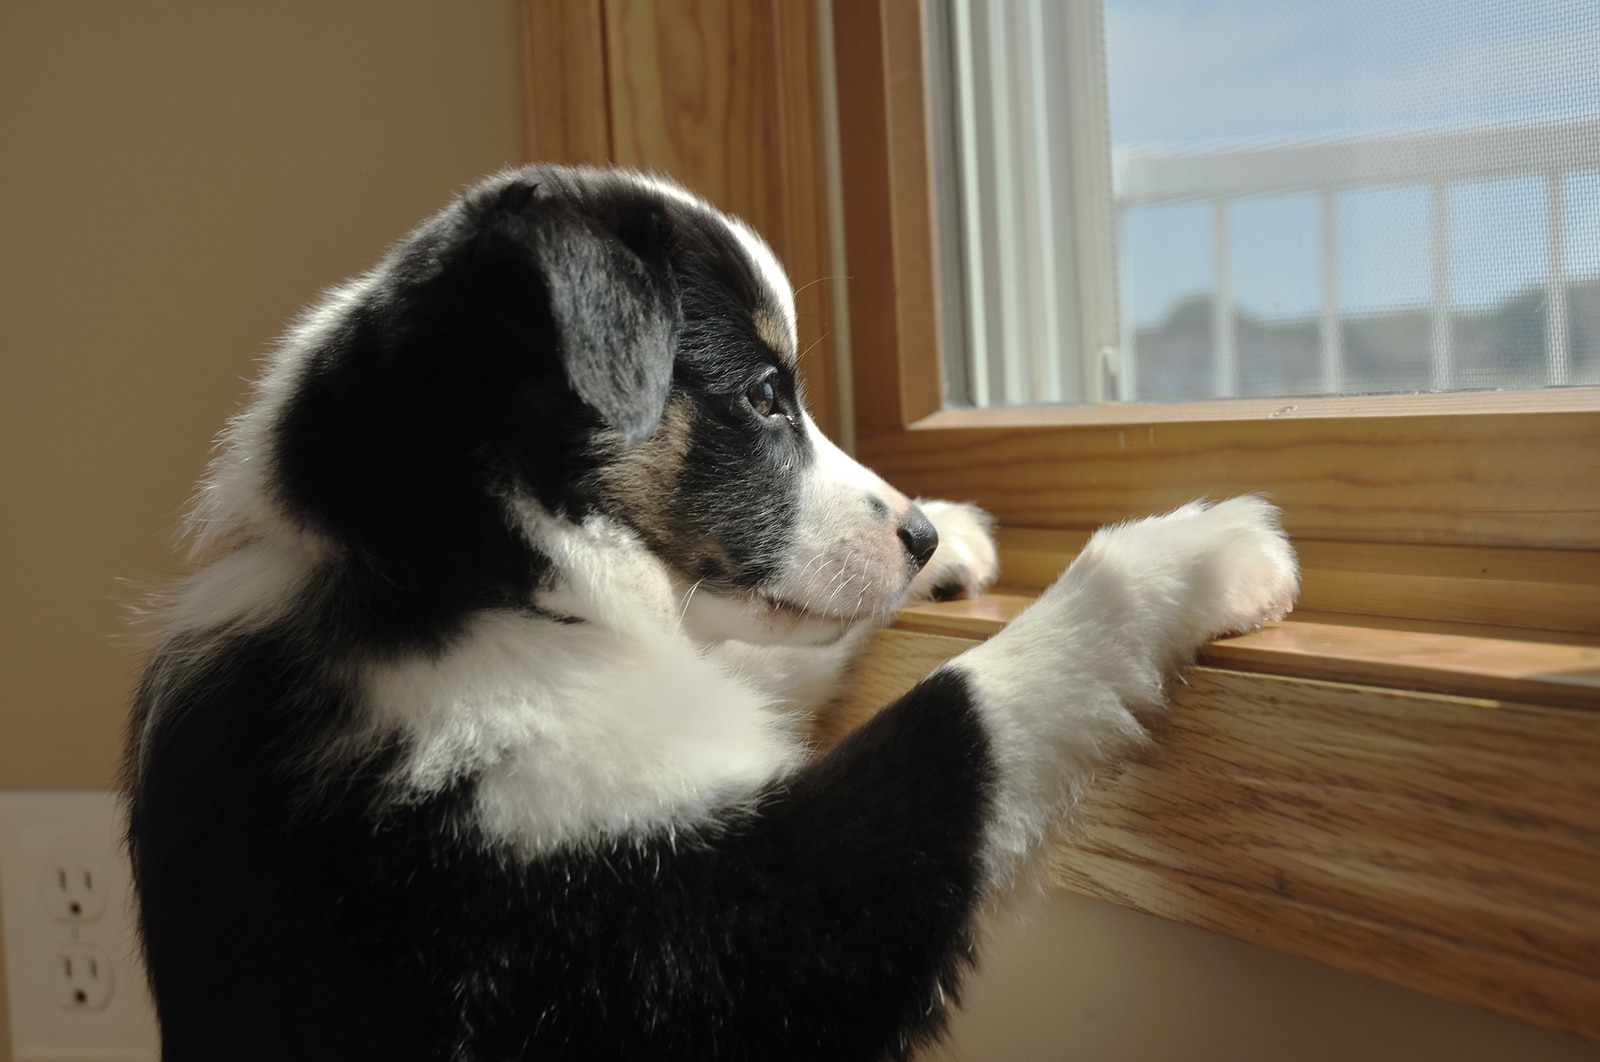 Australian Shepherd puppy standing staring out window